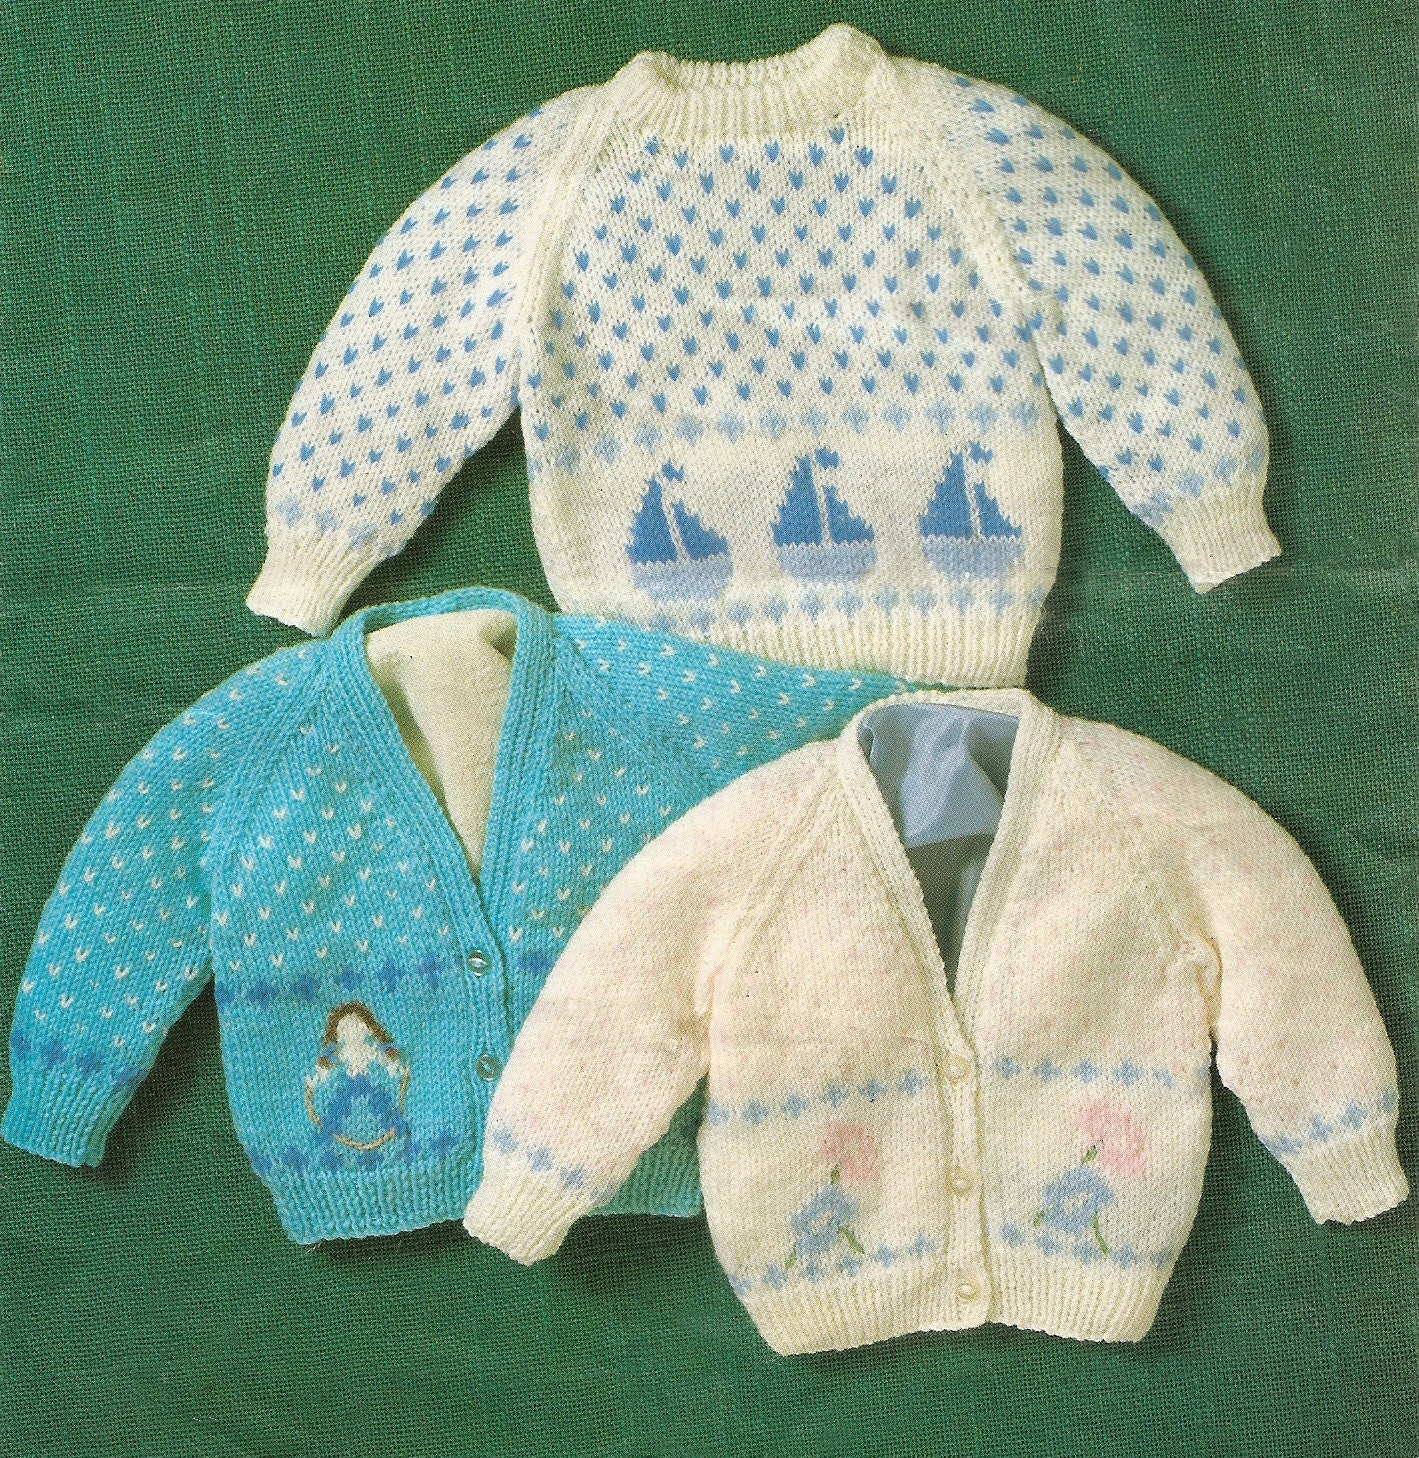 Knitting Patterns Baby Motifs : Knitting Pattern Babys Sweater & Cardigans with Boat Girl